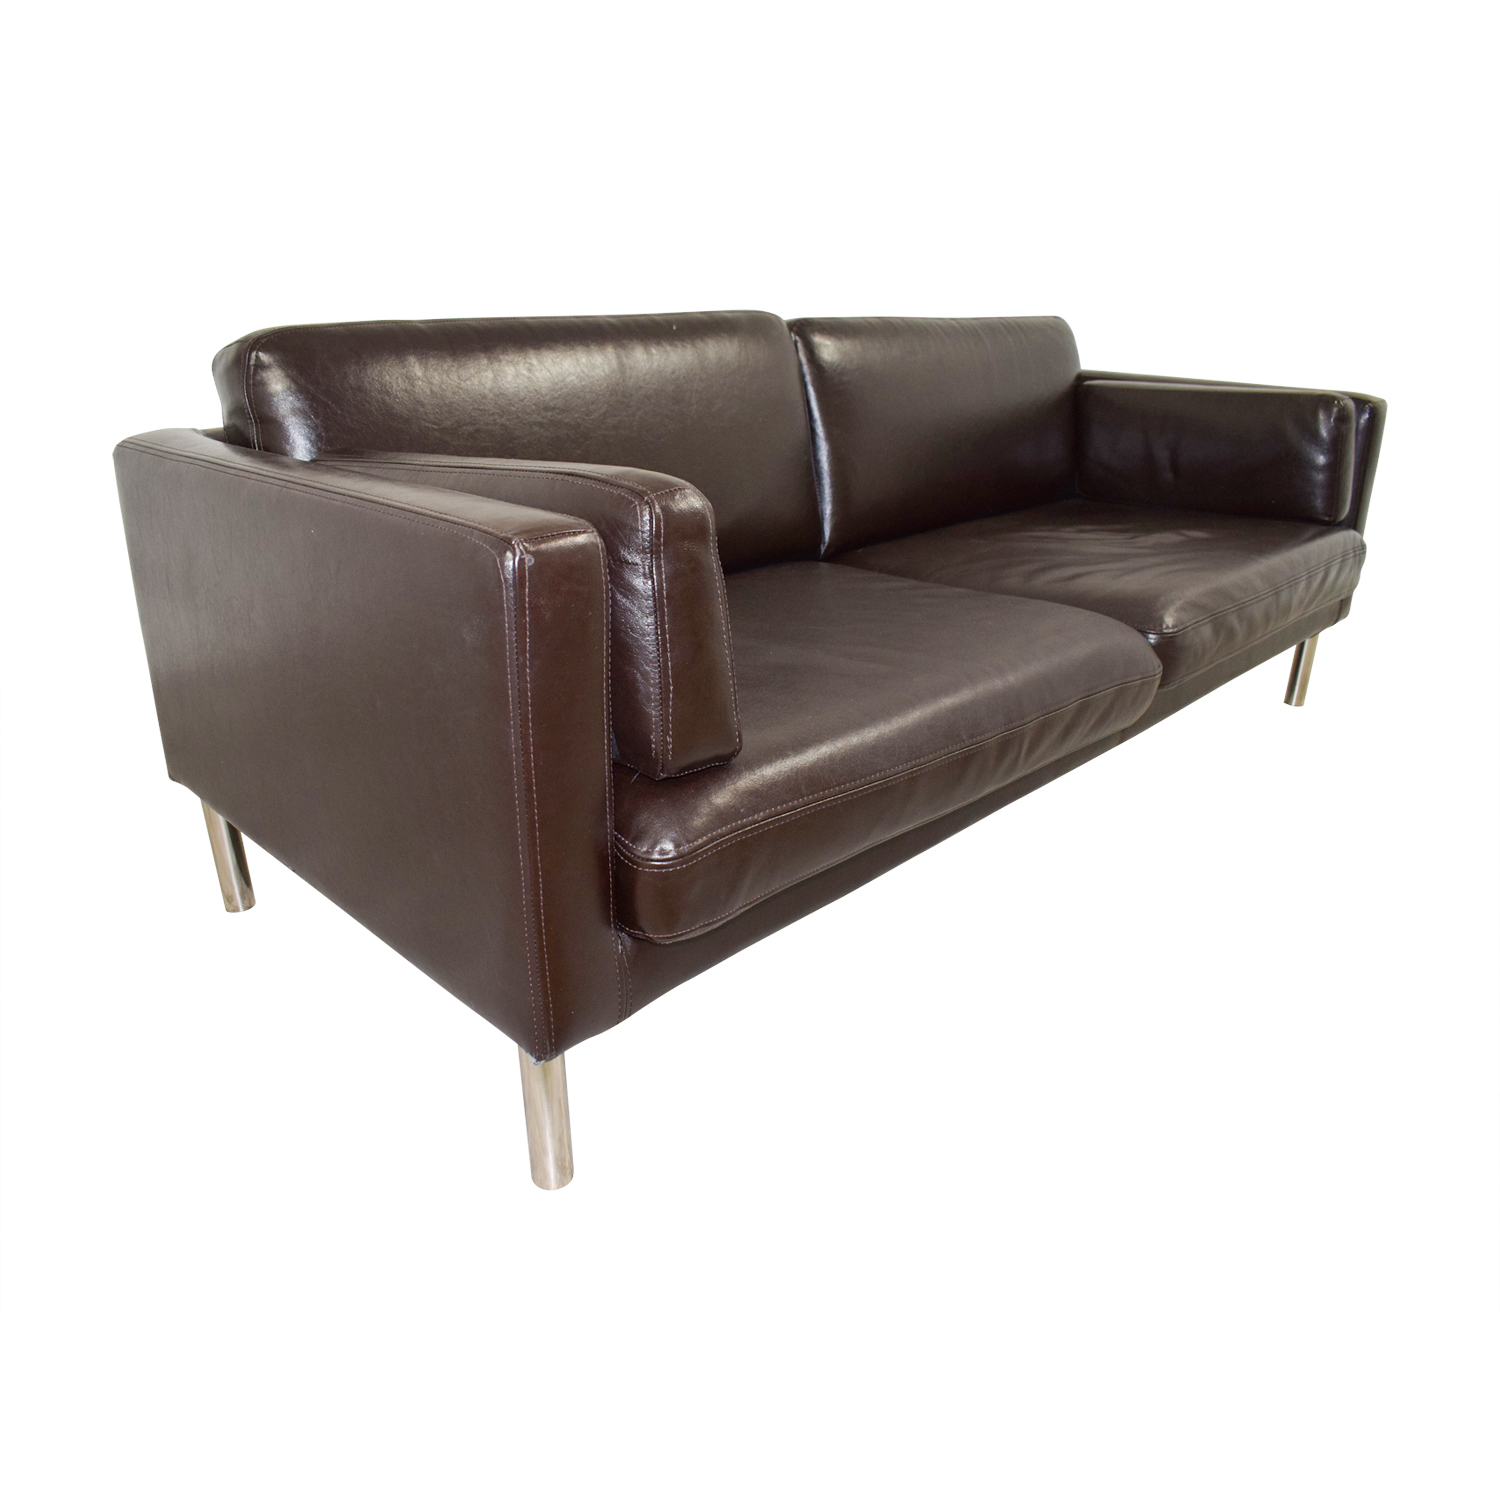 Incredible Sater Sofa Gmtry Best Dining Table And Chair Ideas Images Gmtryco